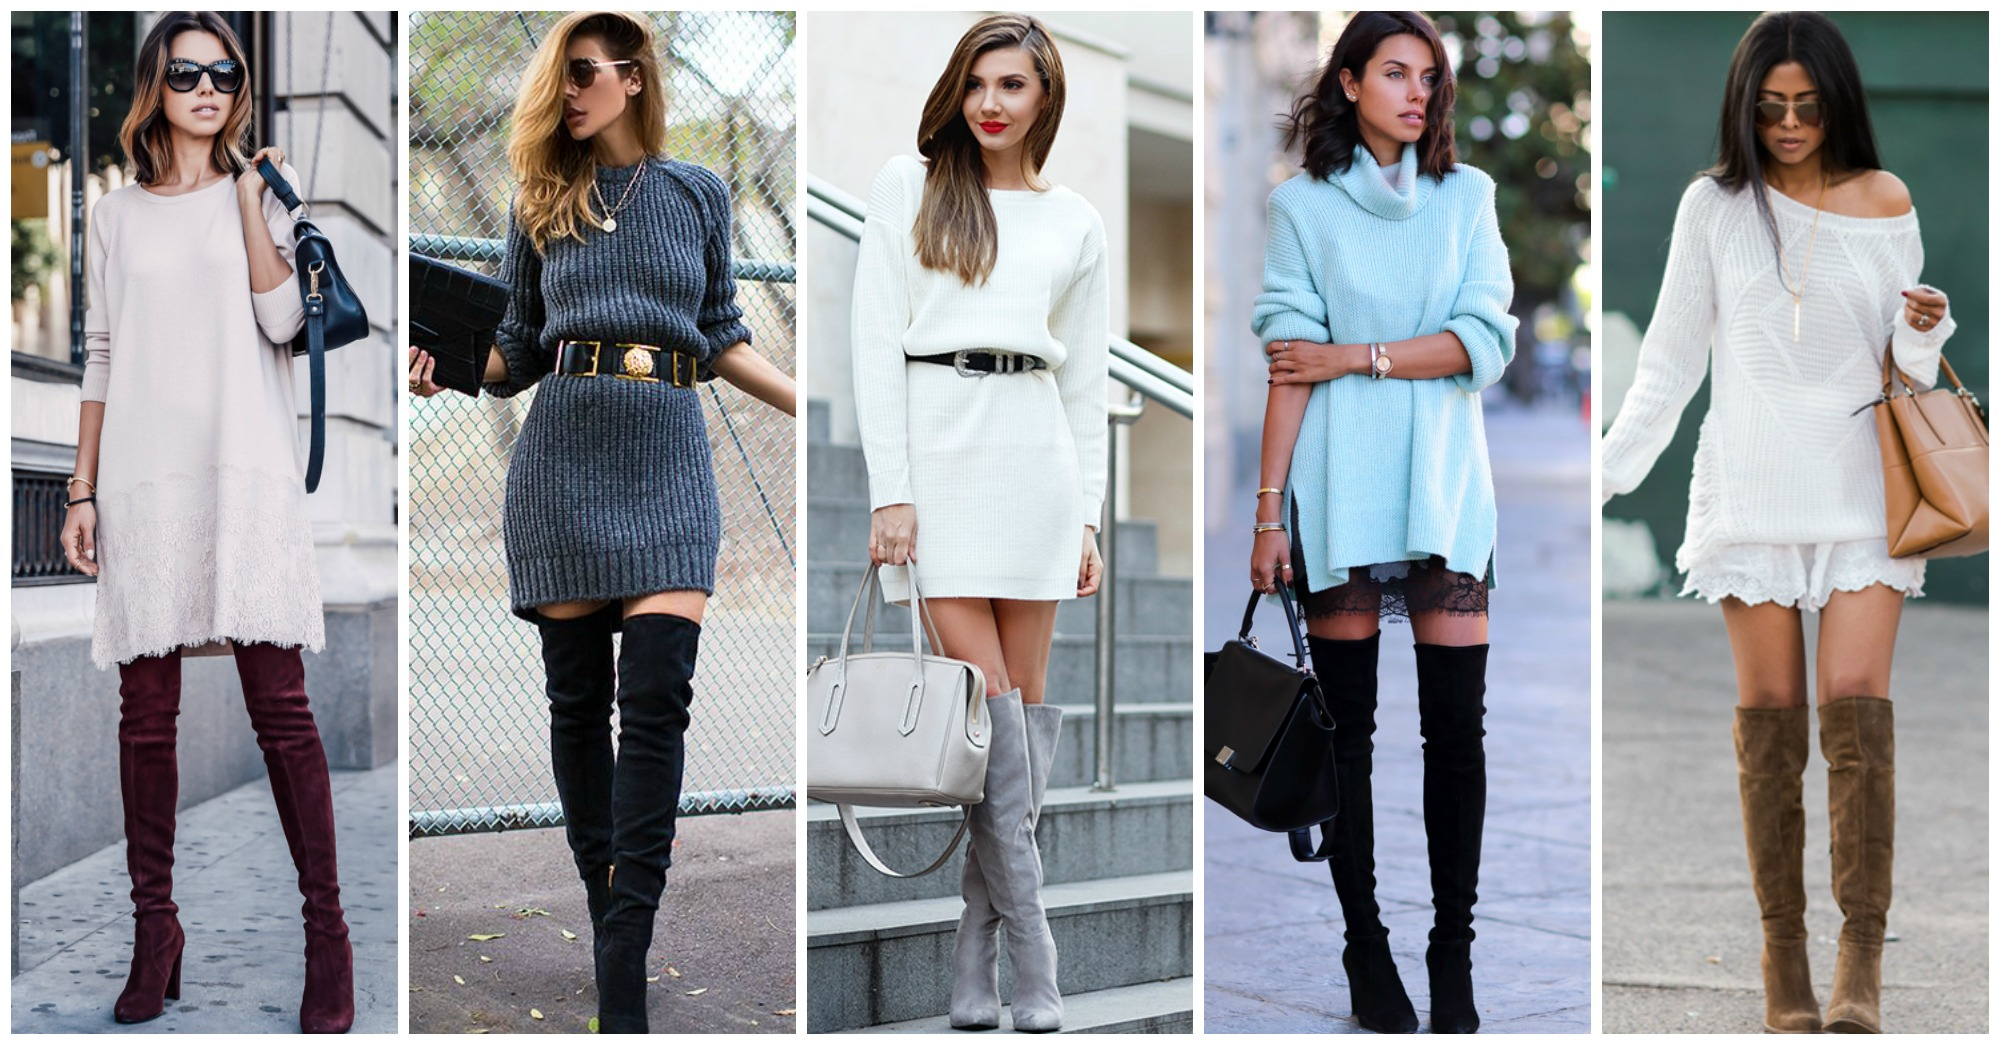 10 Chic and Warm Outfits with Knit Dresses and Over-the-Knee Boots for the Fall